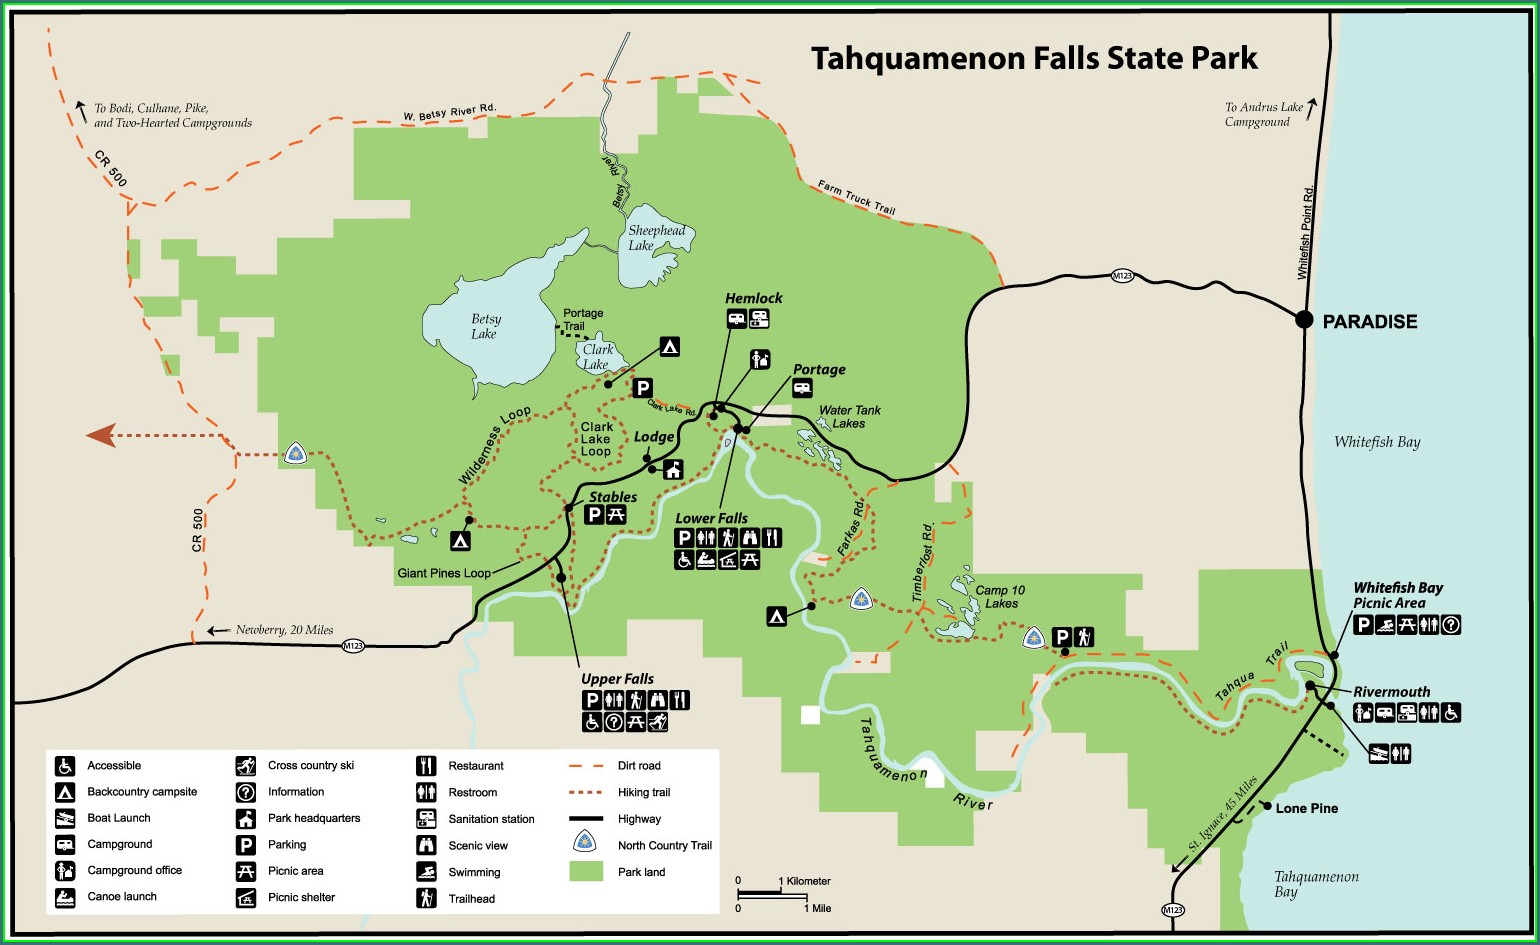 Tahquamenon Falls State Park Campground Map